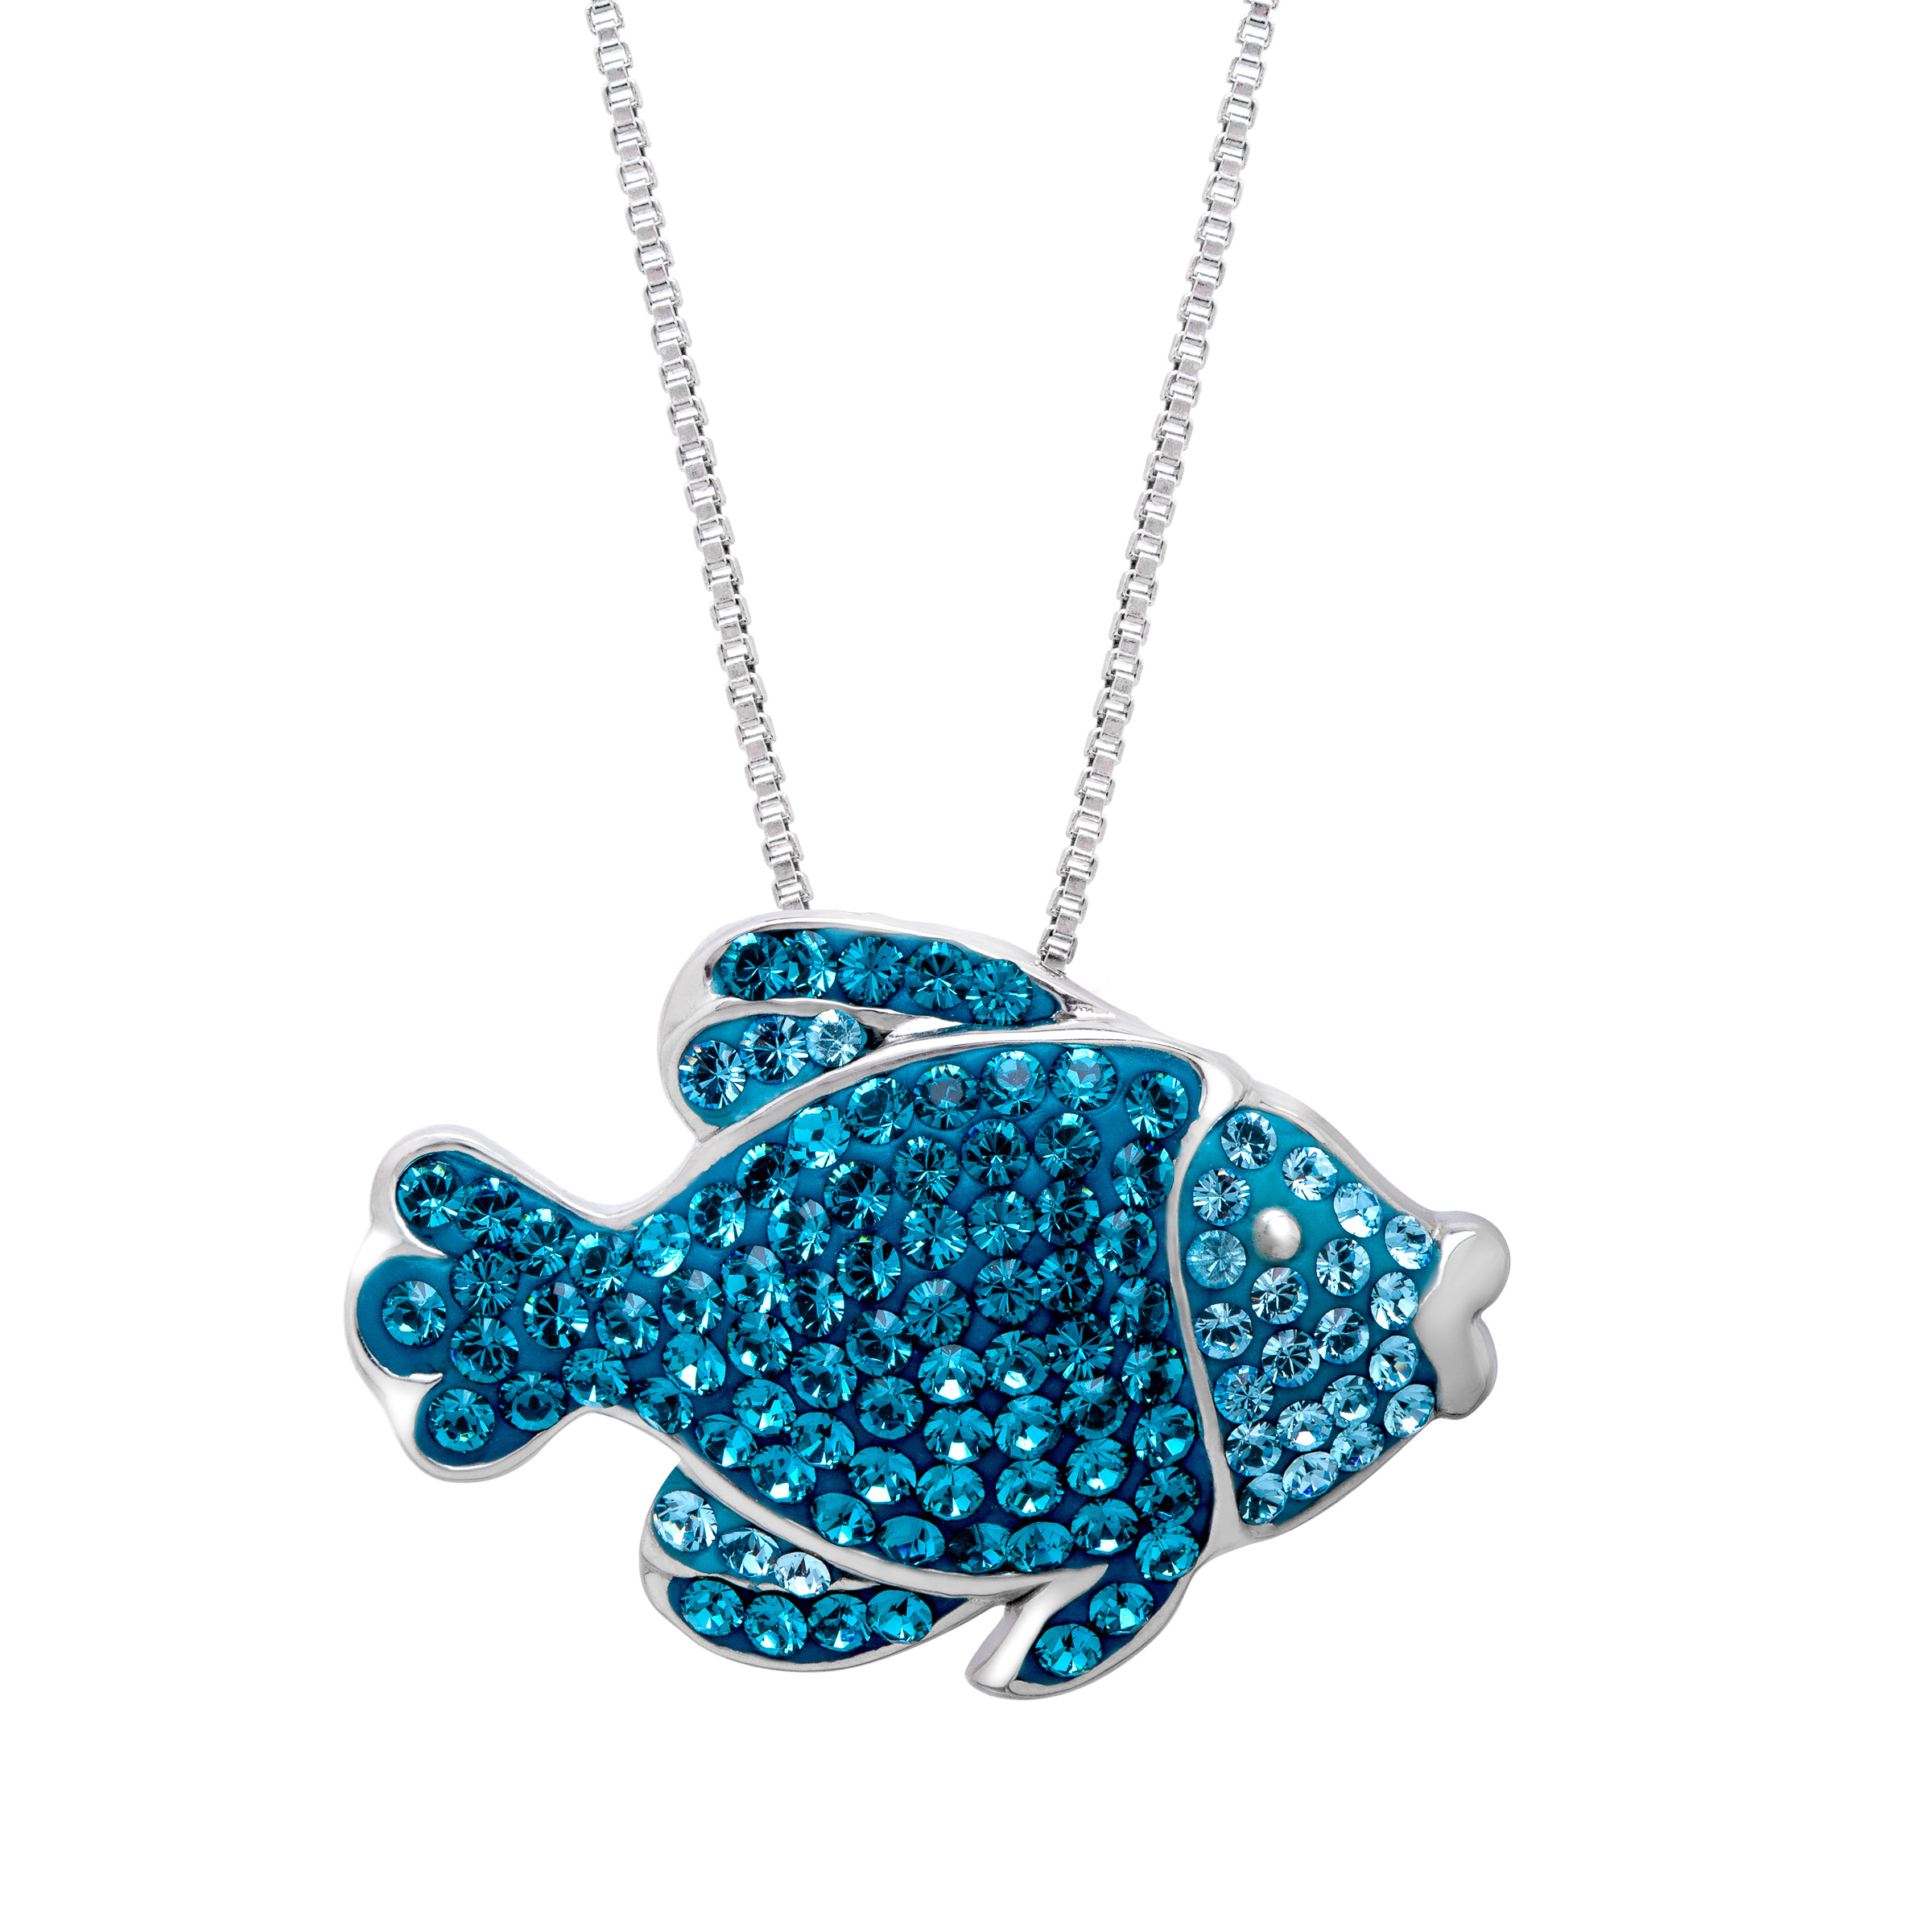 Crystaluxe Fish Pendant Necklace with Sky Blue & Indicolite Swarovski Crystals in Sterling Silver